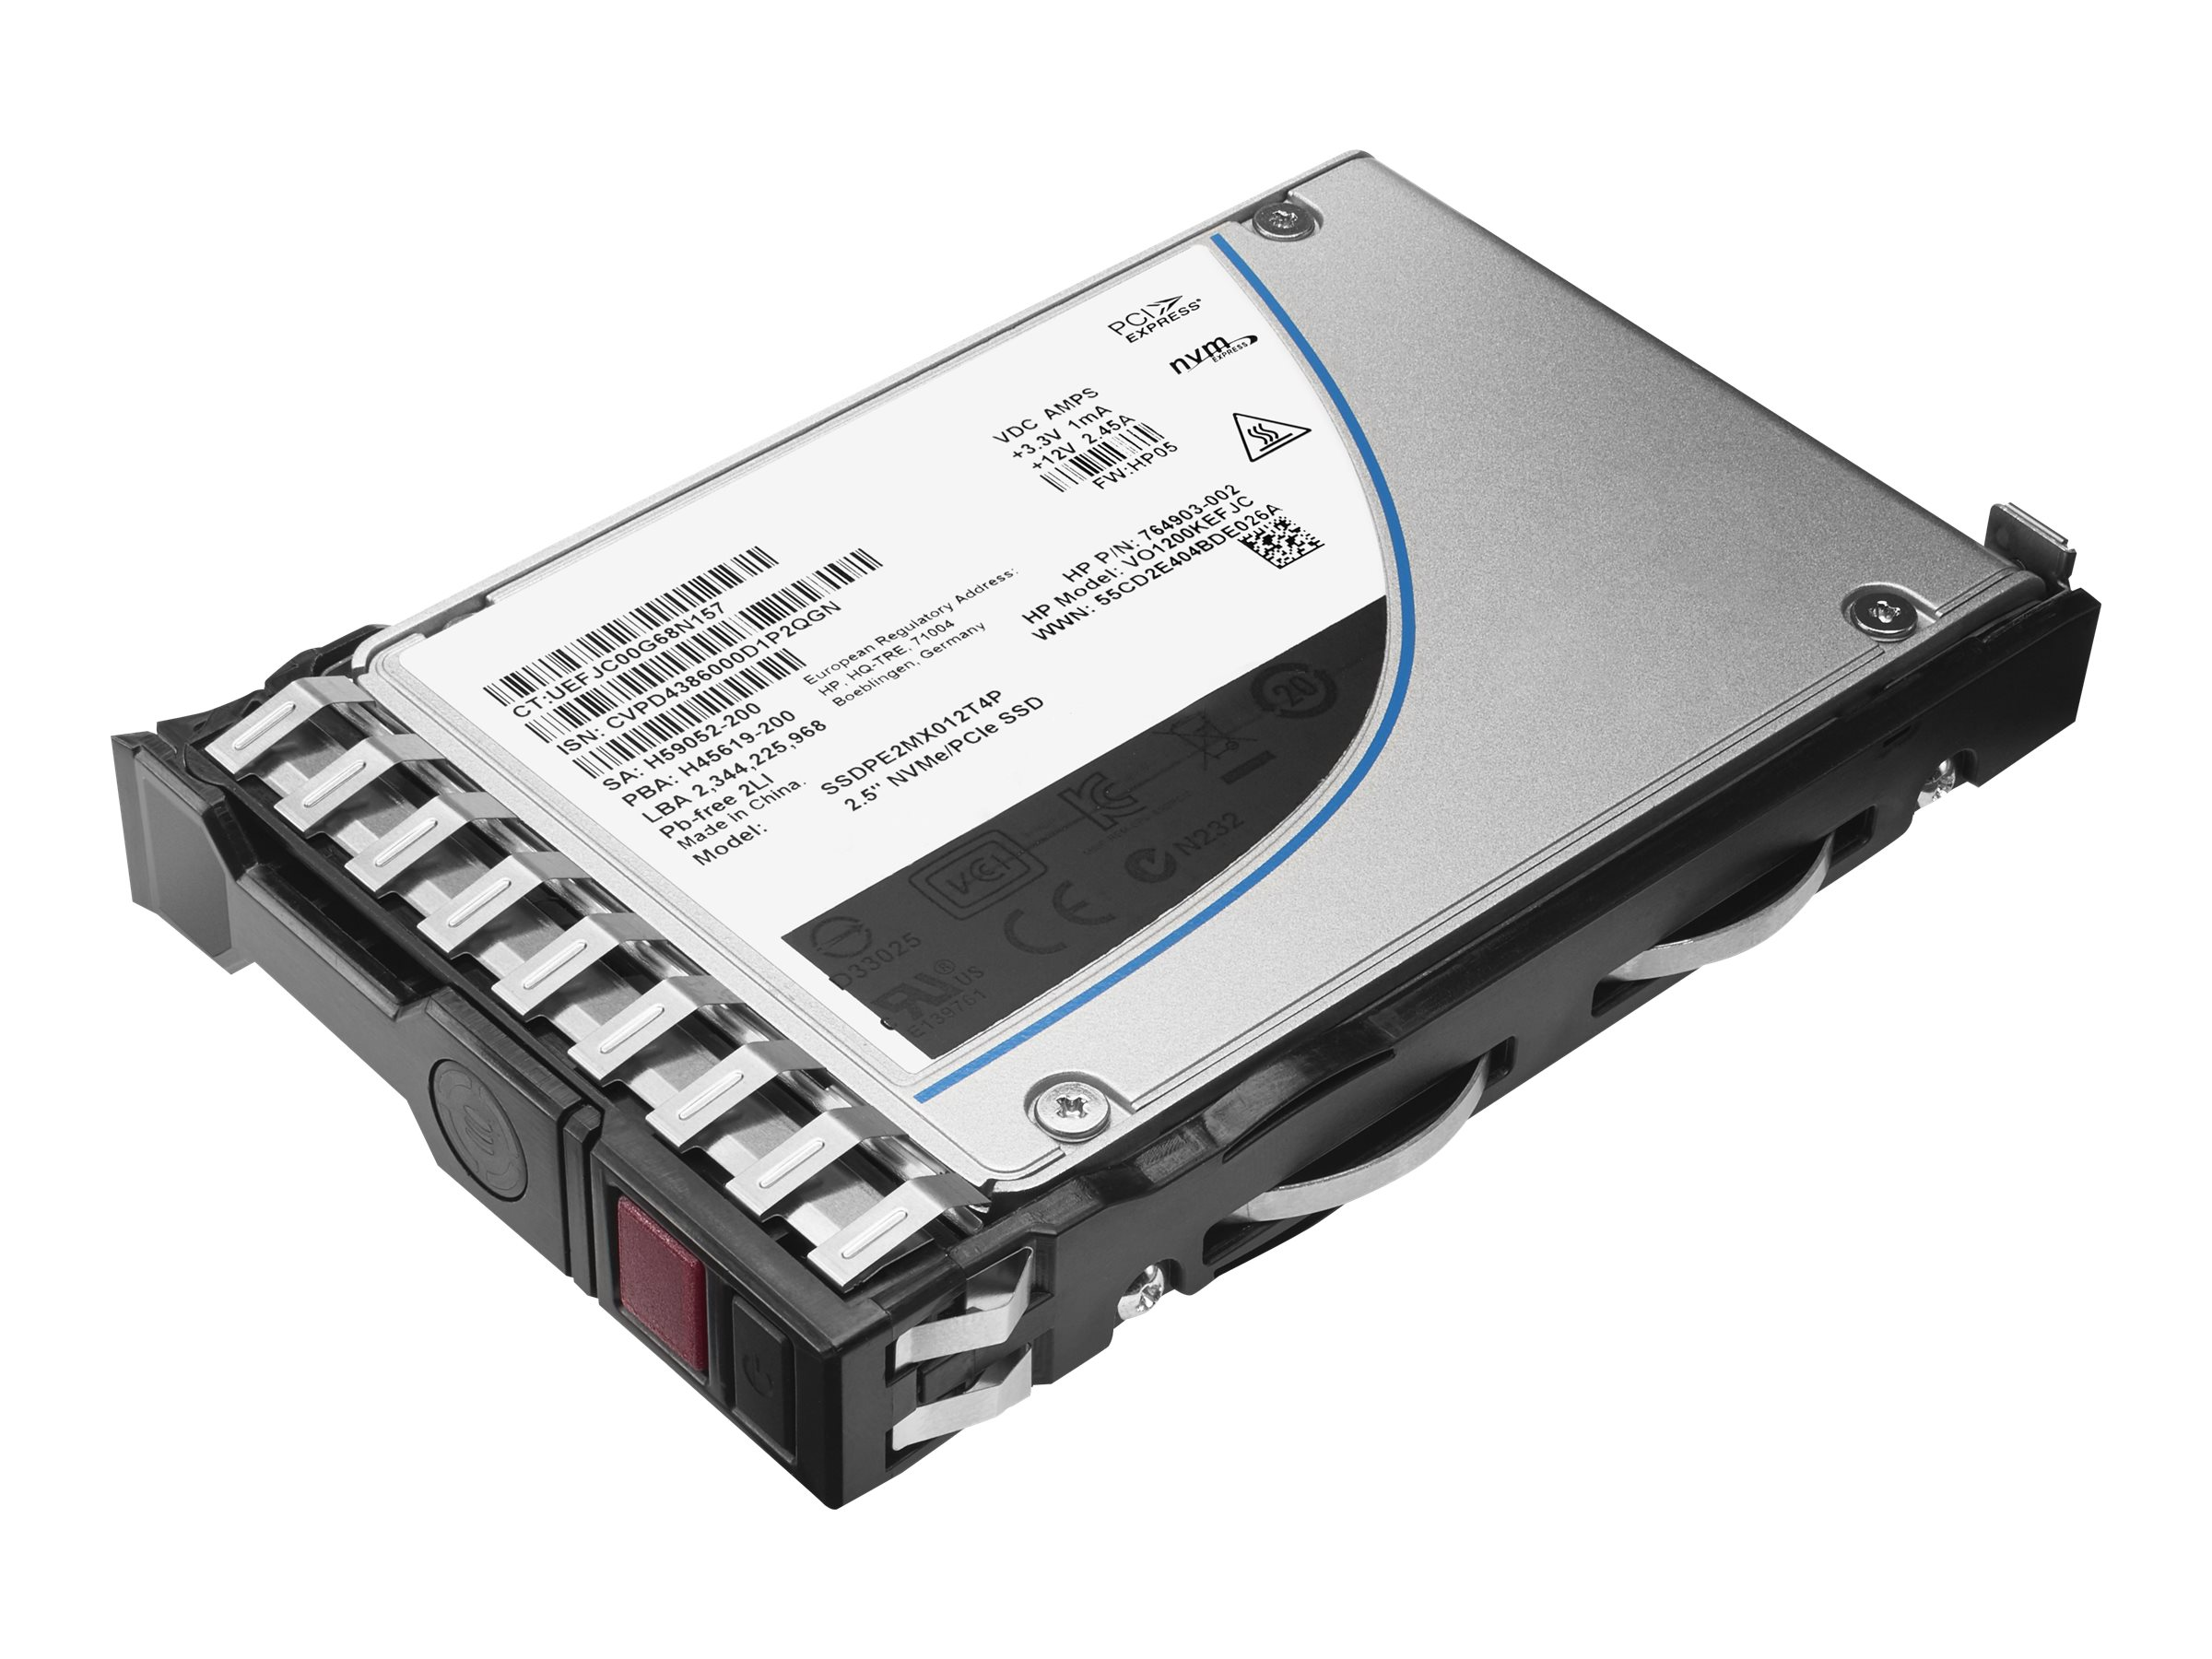 HPE 400GB SAS 12Gb s Write Intensive SFF 2.5 Hot Plug Solid State Drive for Gen8 Servers & Beyond